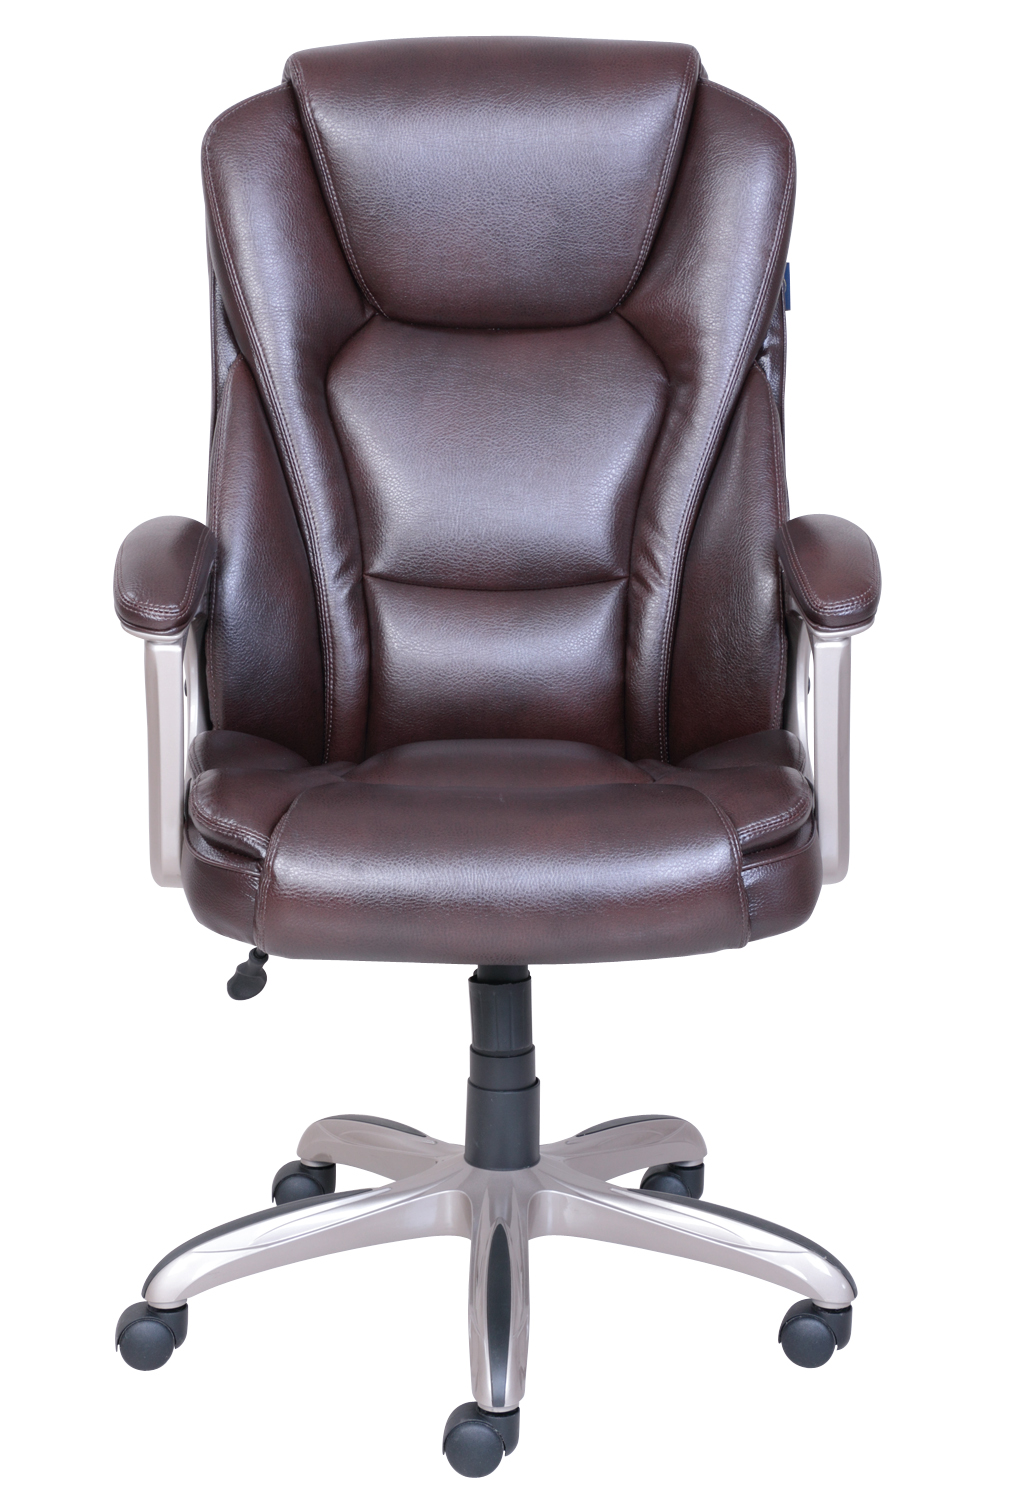 brown computer chair with built in bookshelf office desk leather executive high back ergonomic swivel